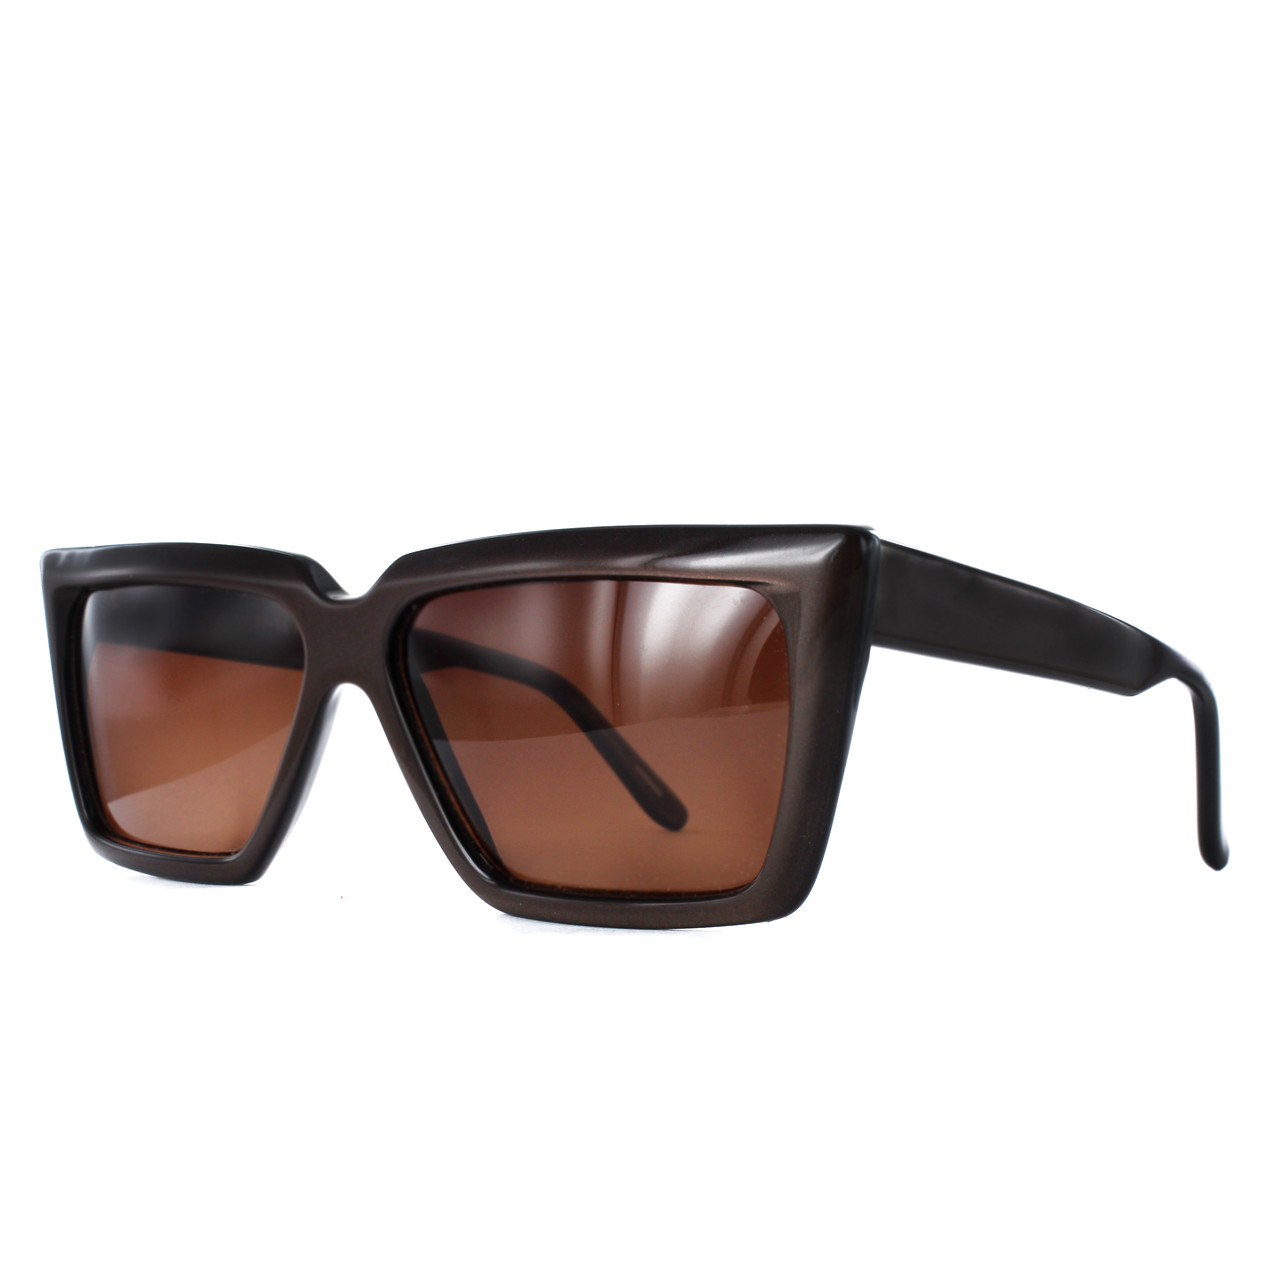 GEEK COUTURE GEEK FONTANA Sunglass in Black